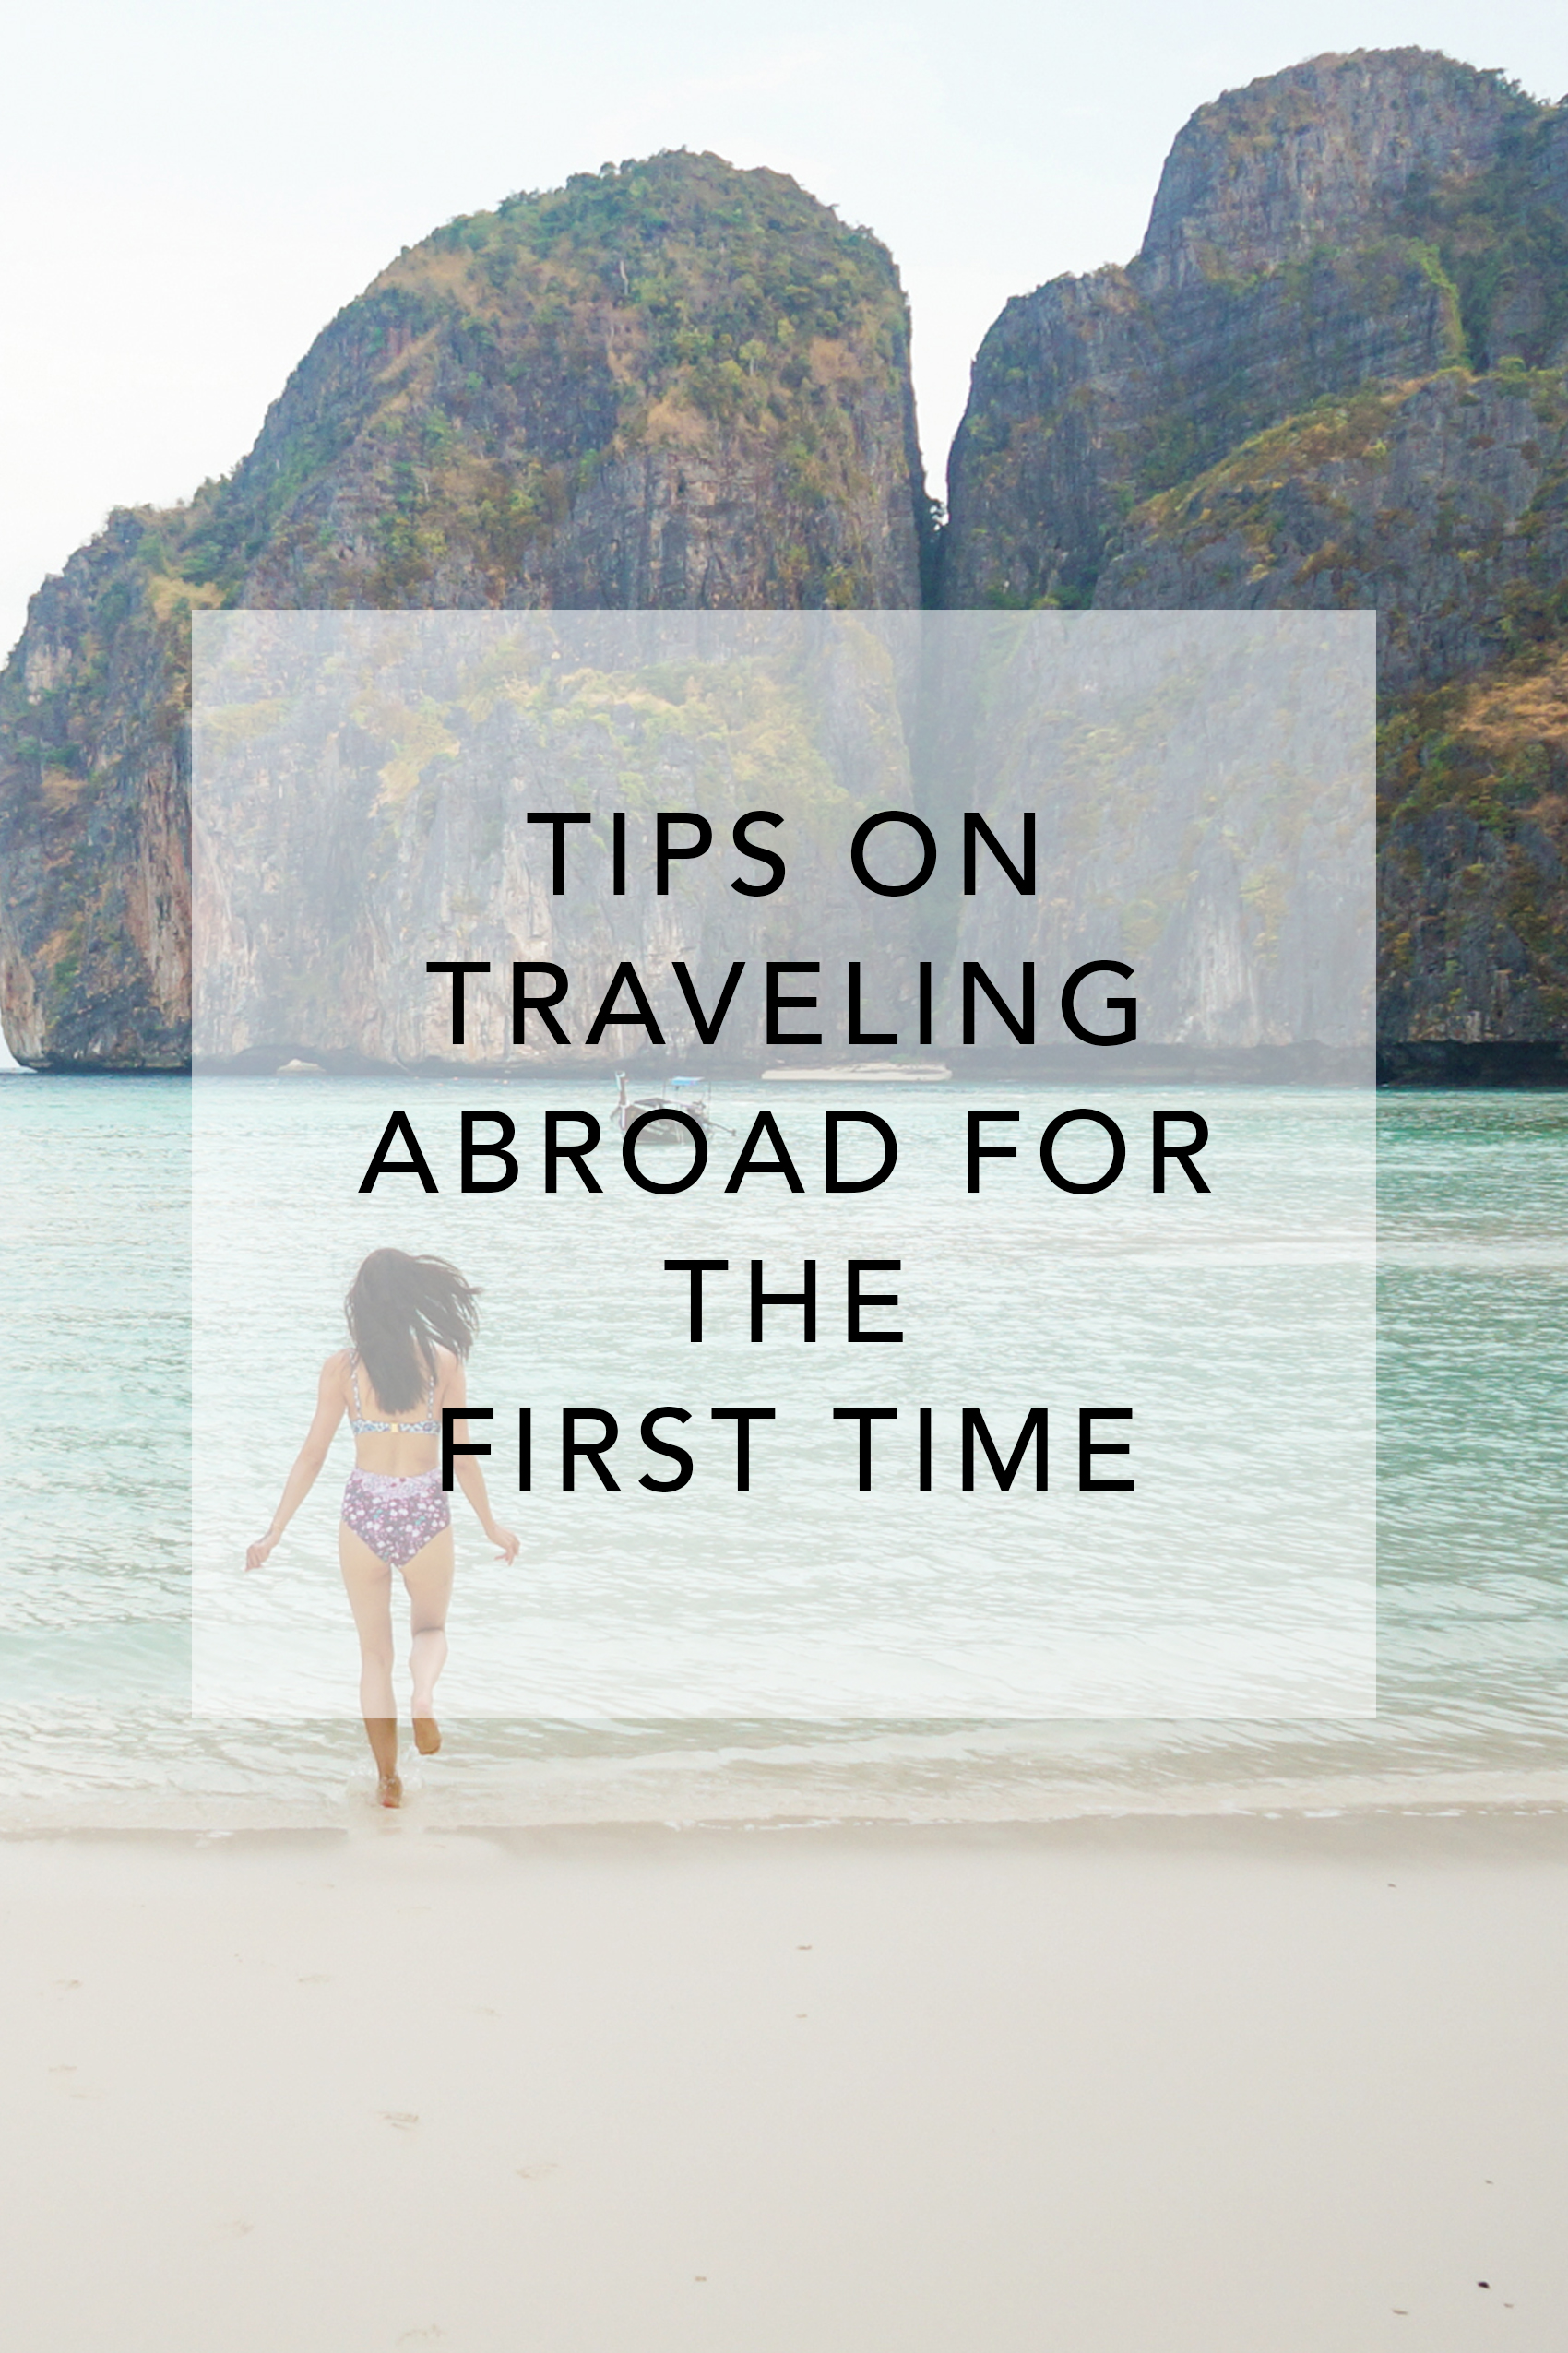 Tips on traveling abroad for the first time